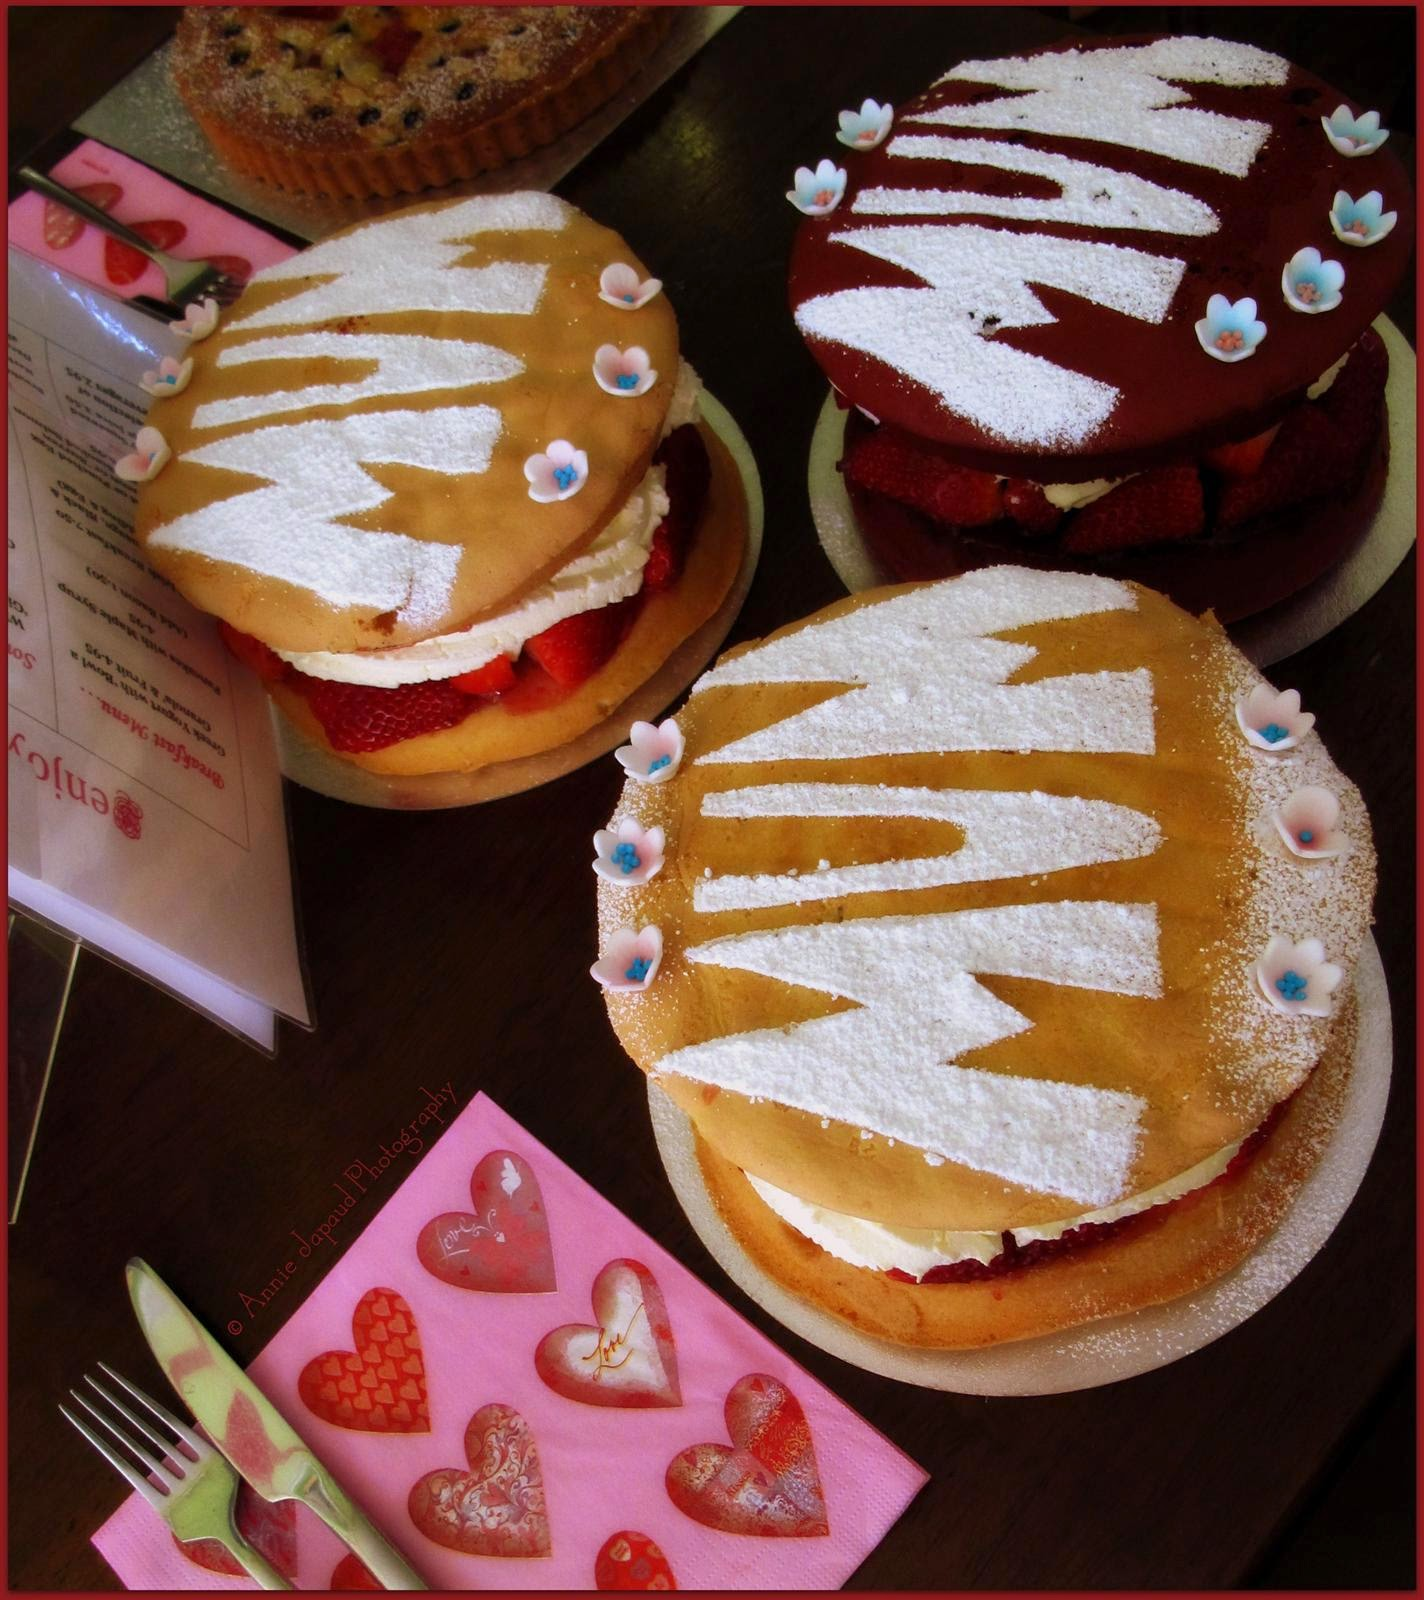 images of Victoria sponges with mum written on them